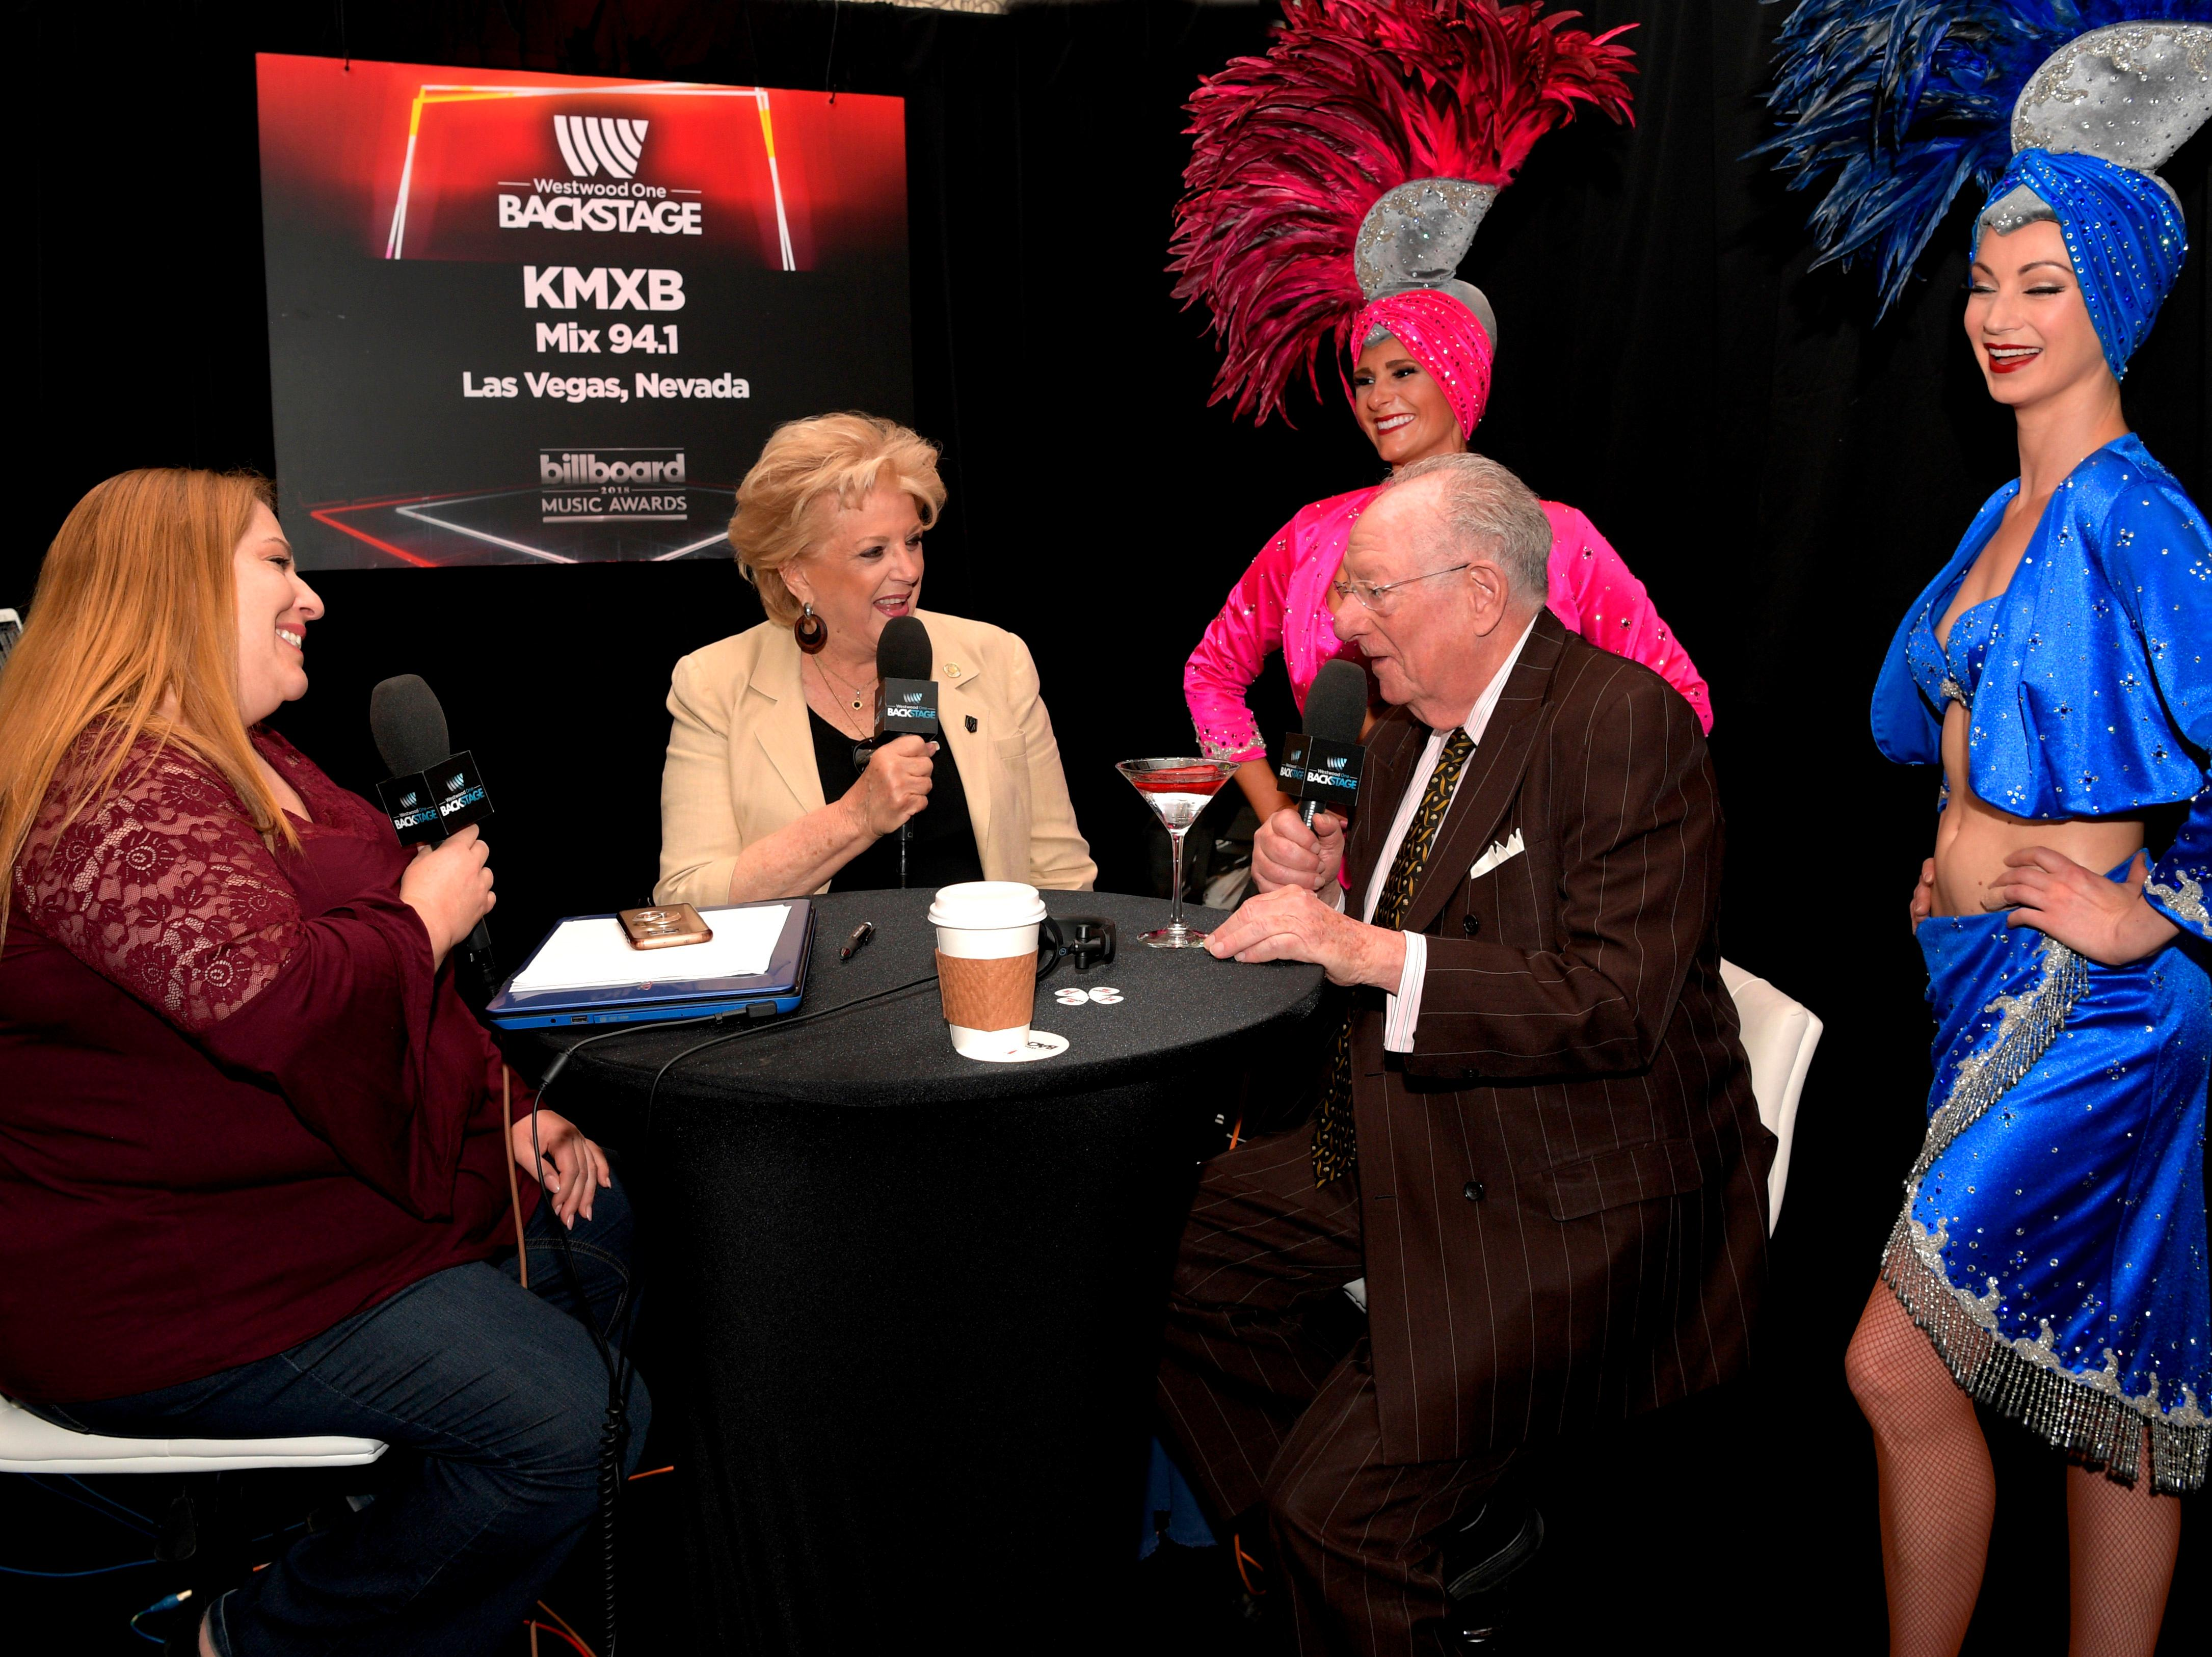 Las Vegas Mayor Carolyn G. Goodman and former Las Vegas Mayor Oscar B. Goodman are interviewed by KMXB Las Vegas radio at the Billboard Music Awards Radio Row with representatives from across the country at the MGM Grand Hotel & Casino on the Las Vegas Strip. Saturday, May 19, 2018. CREDIT: Glenn Pinkerton/Las Vegas News Bureau